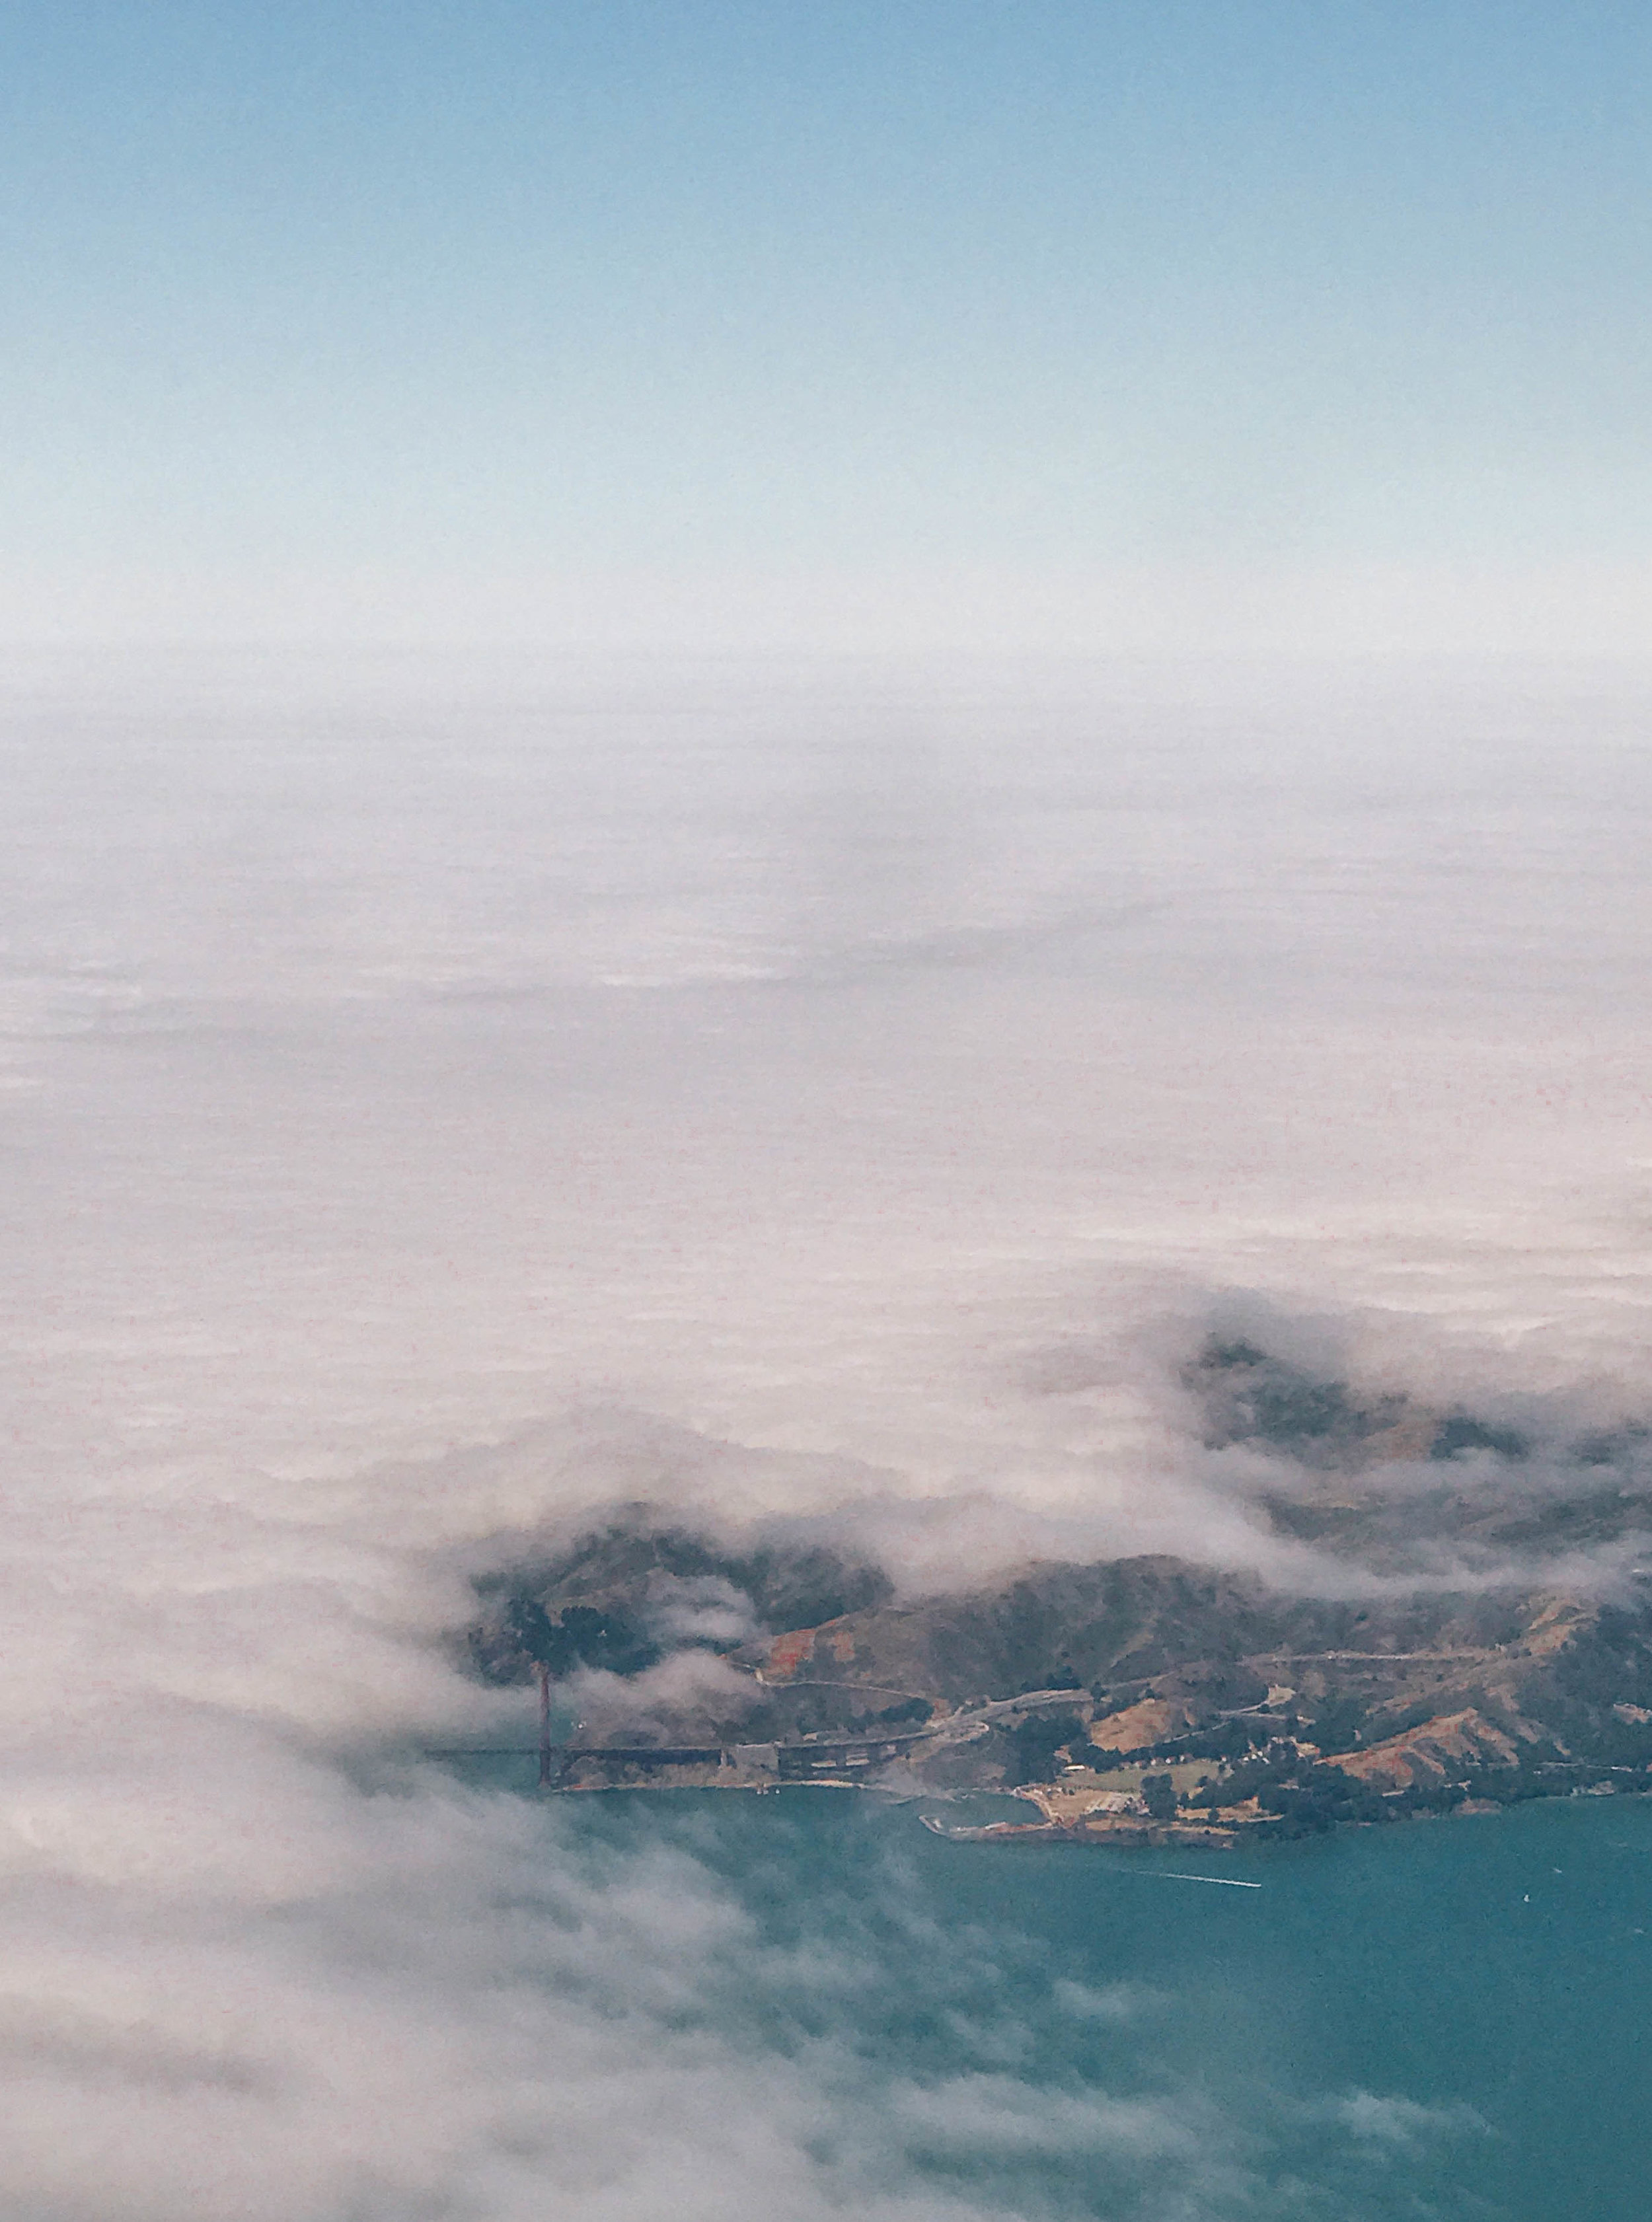 The view from my airplane window. You can just barely see the Golden Gate Bridge peeking out from the fog. So magical!